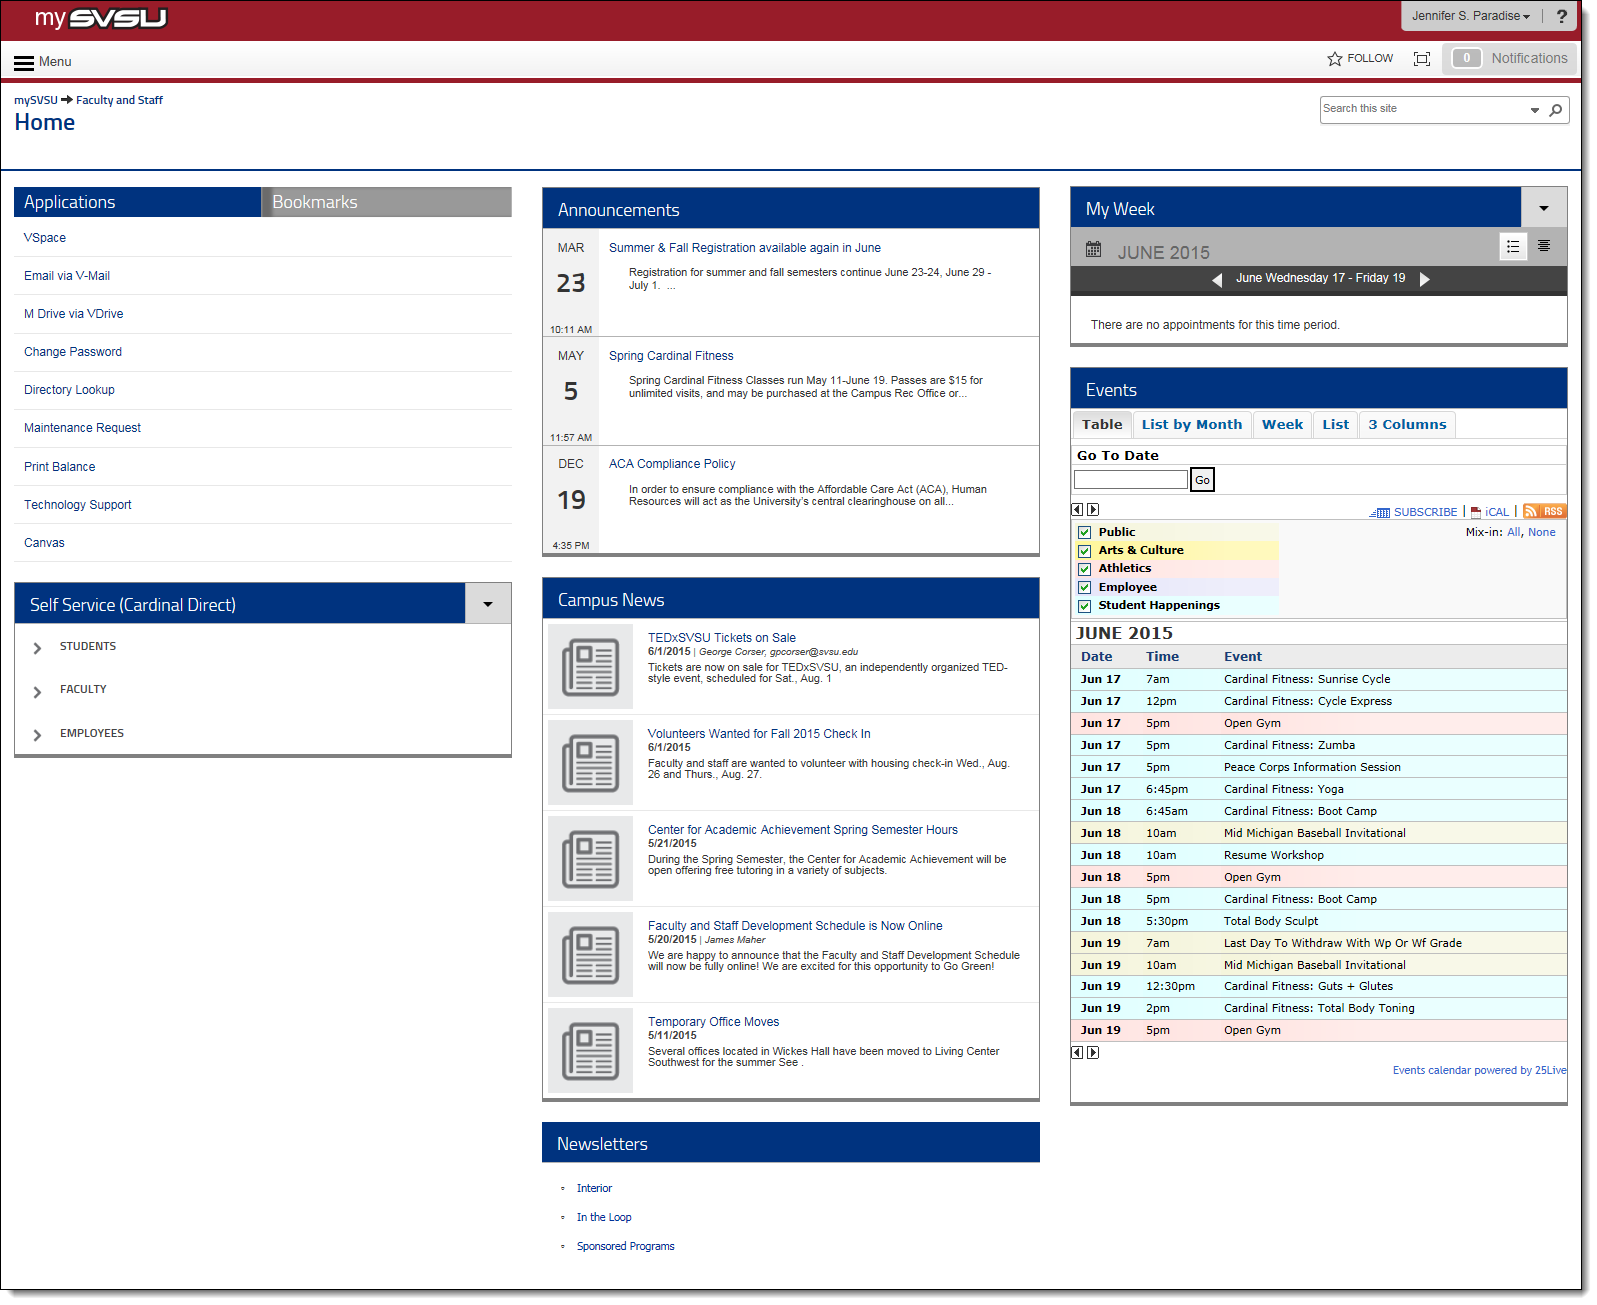 Screenshot of mySVSU portal.